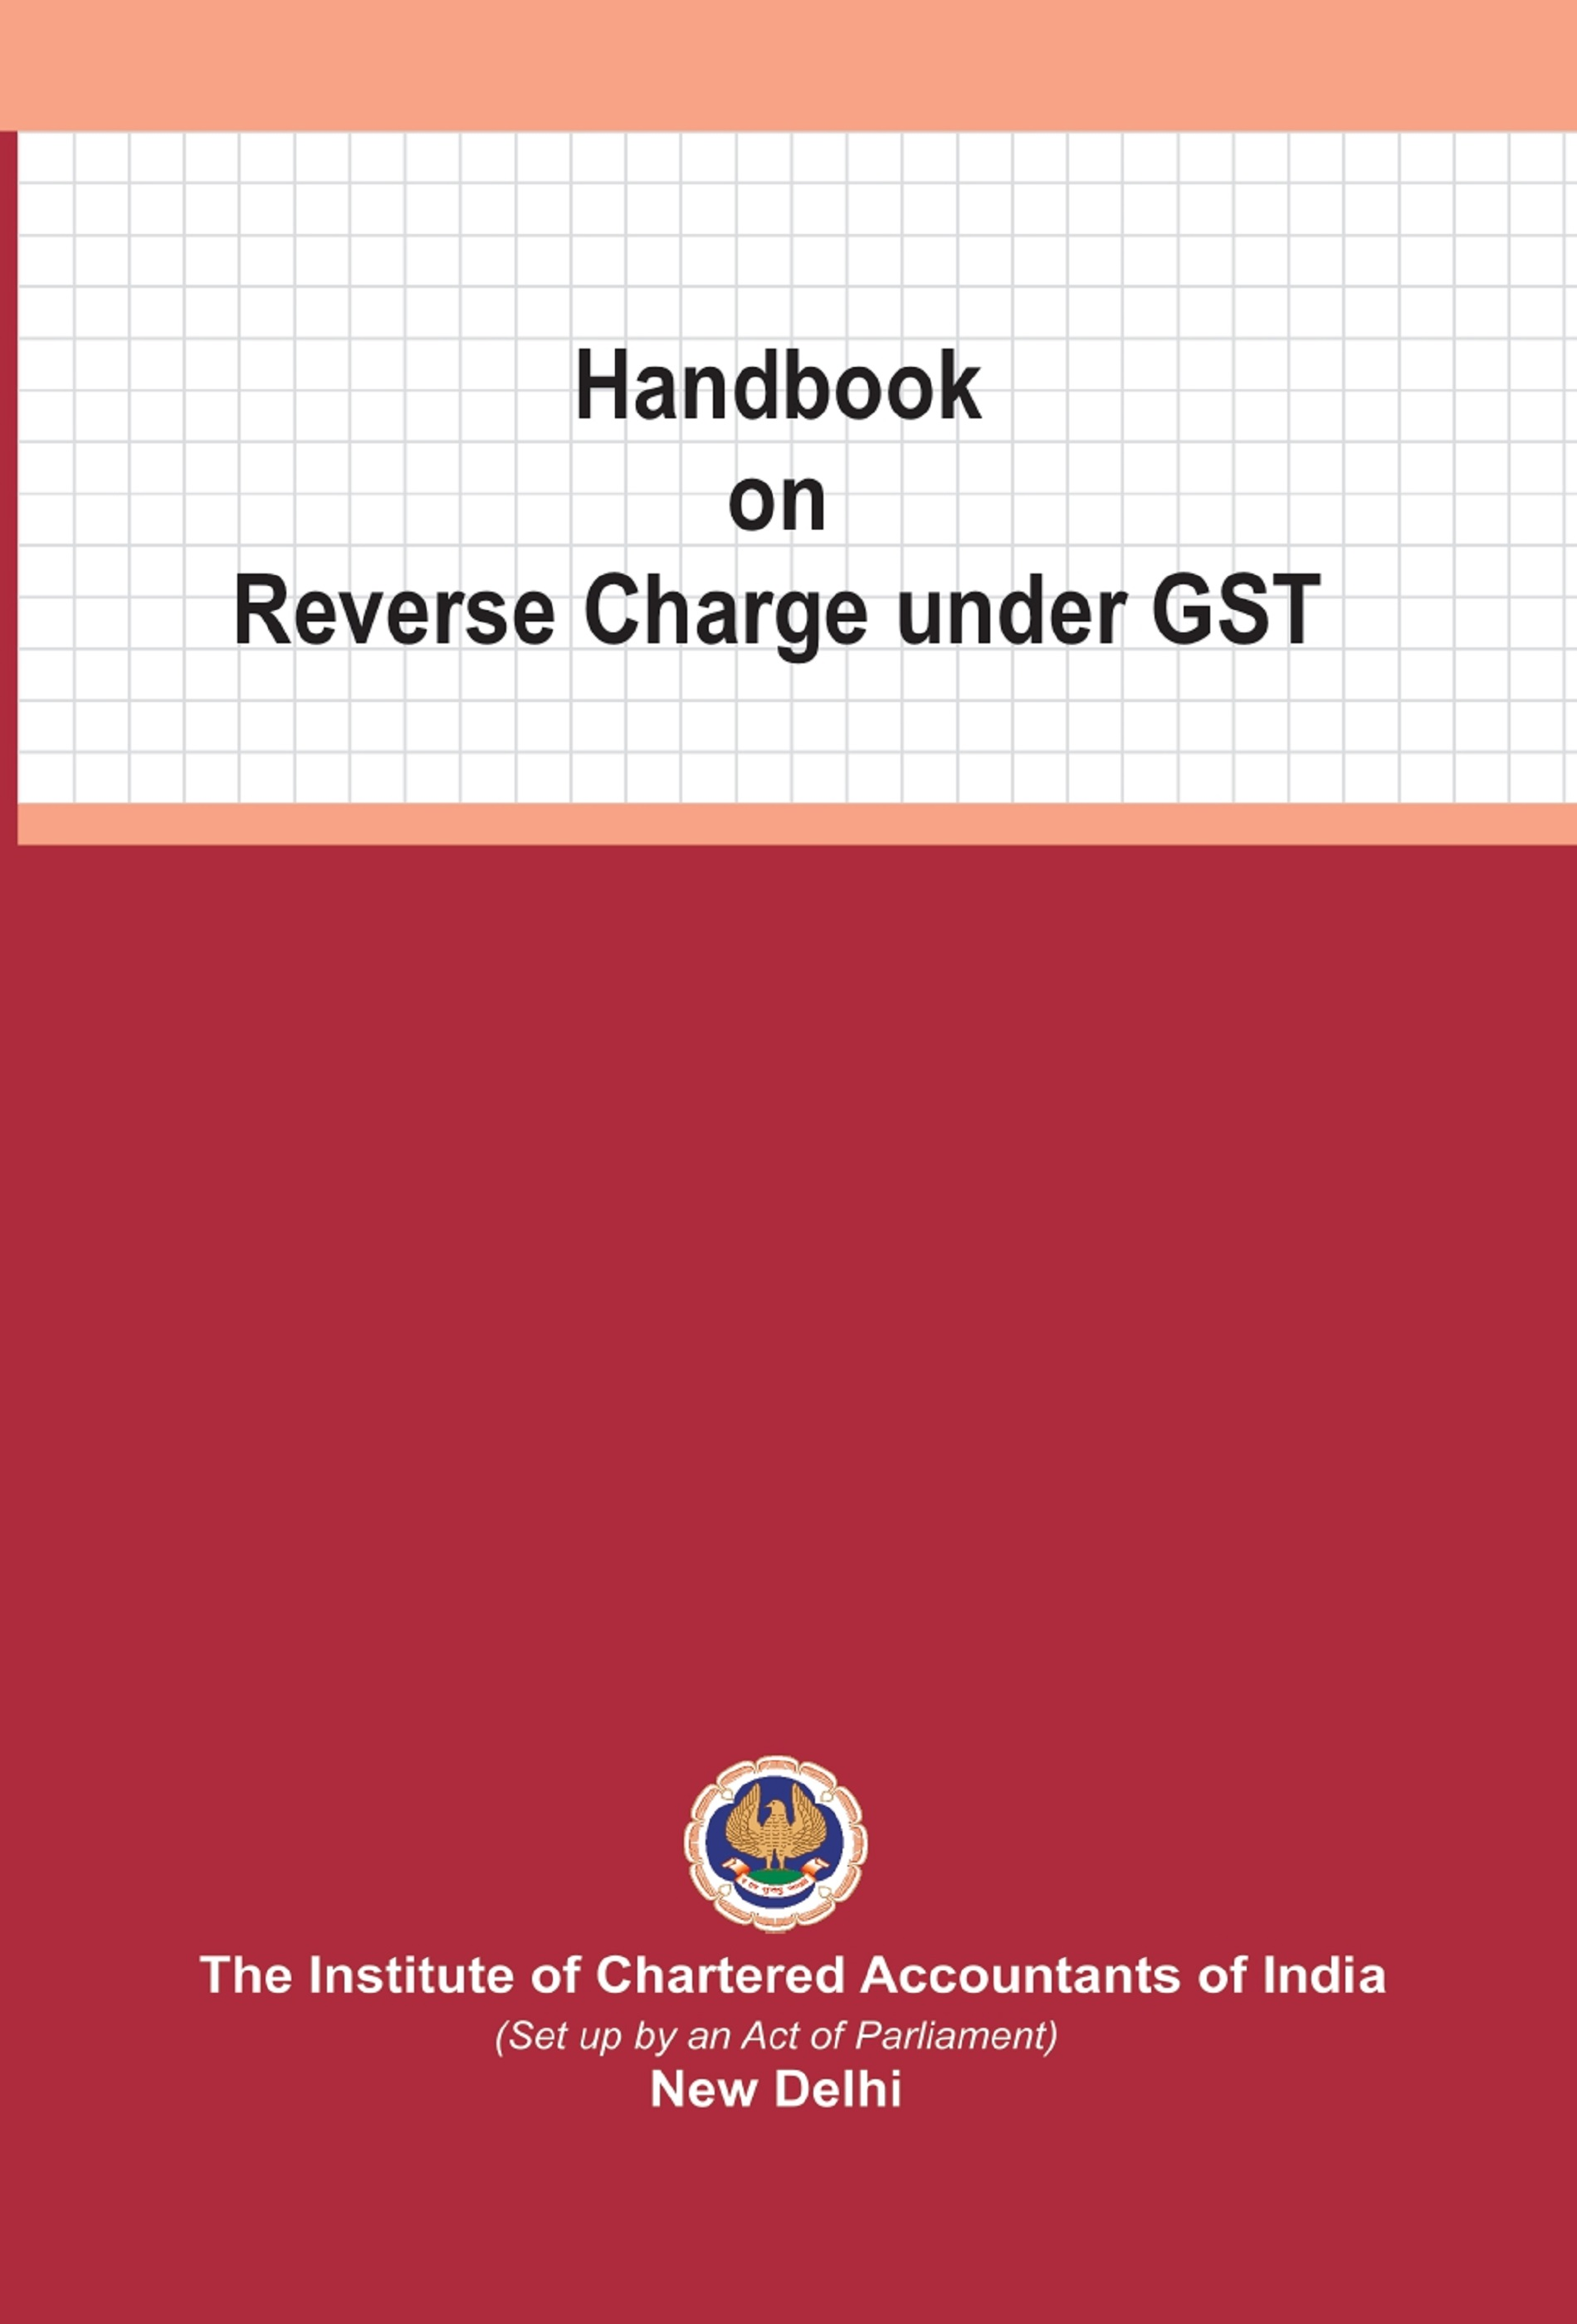 Handbook on Reverse Charge under GST (May, 2020)